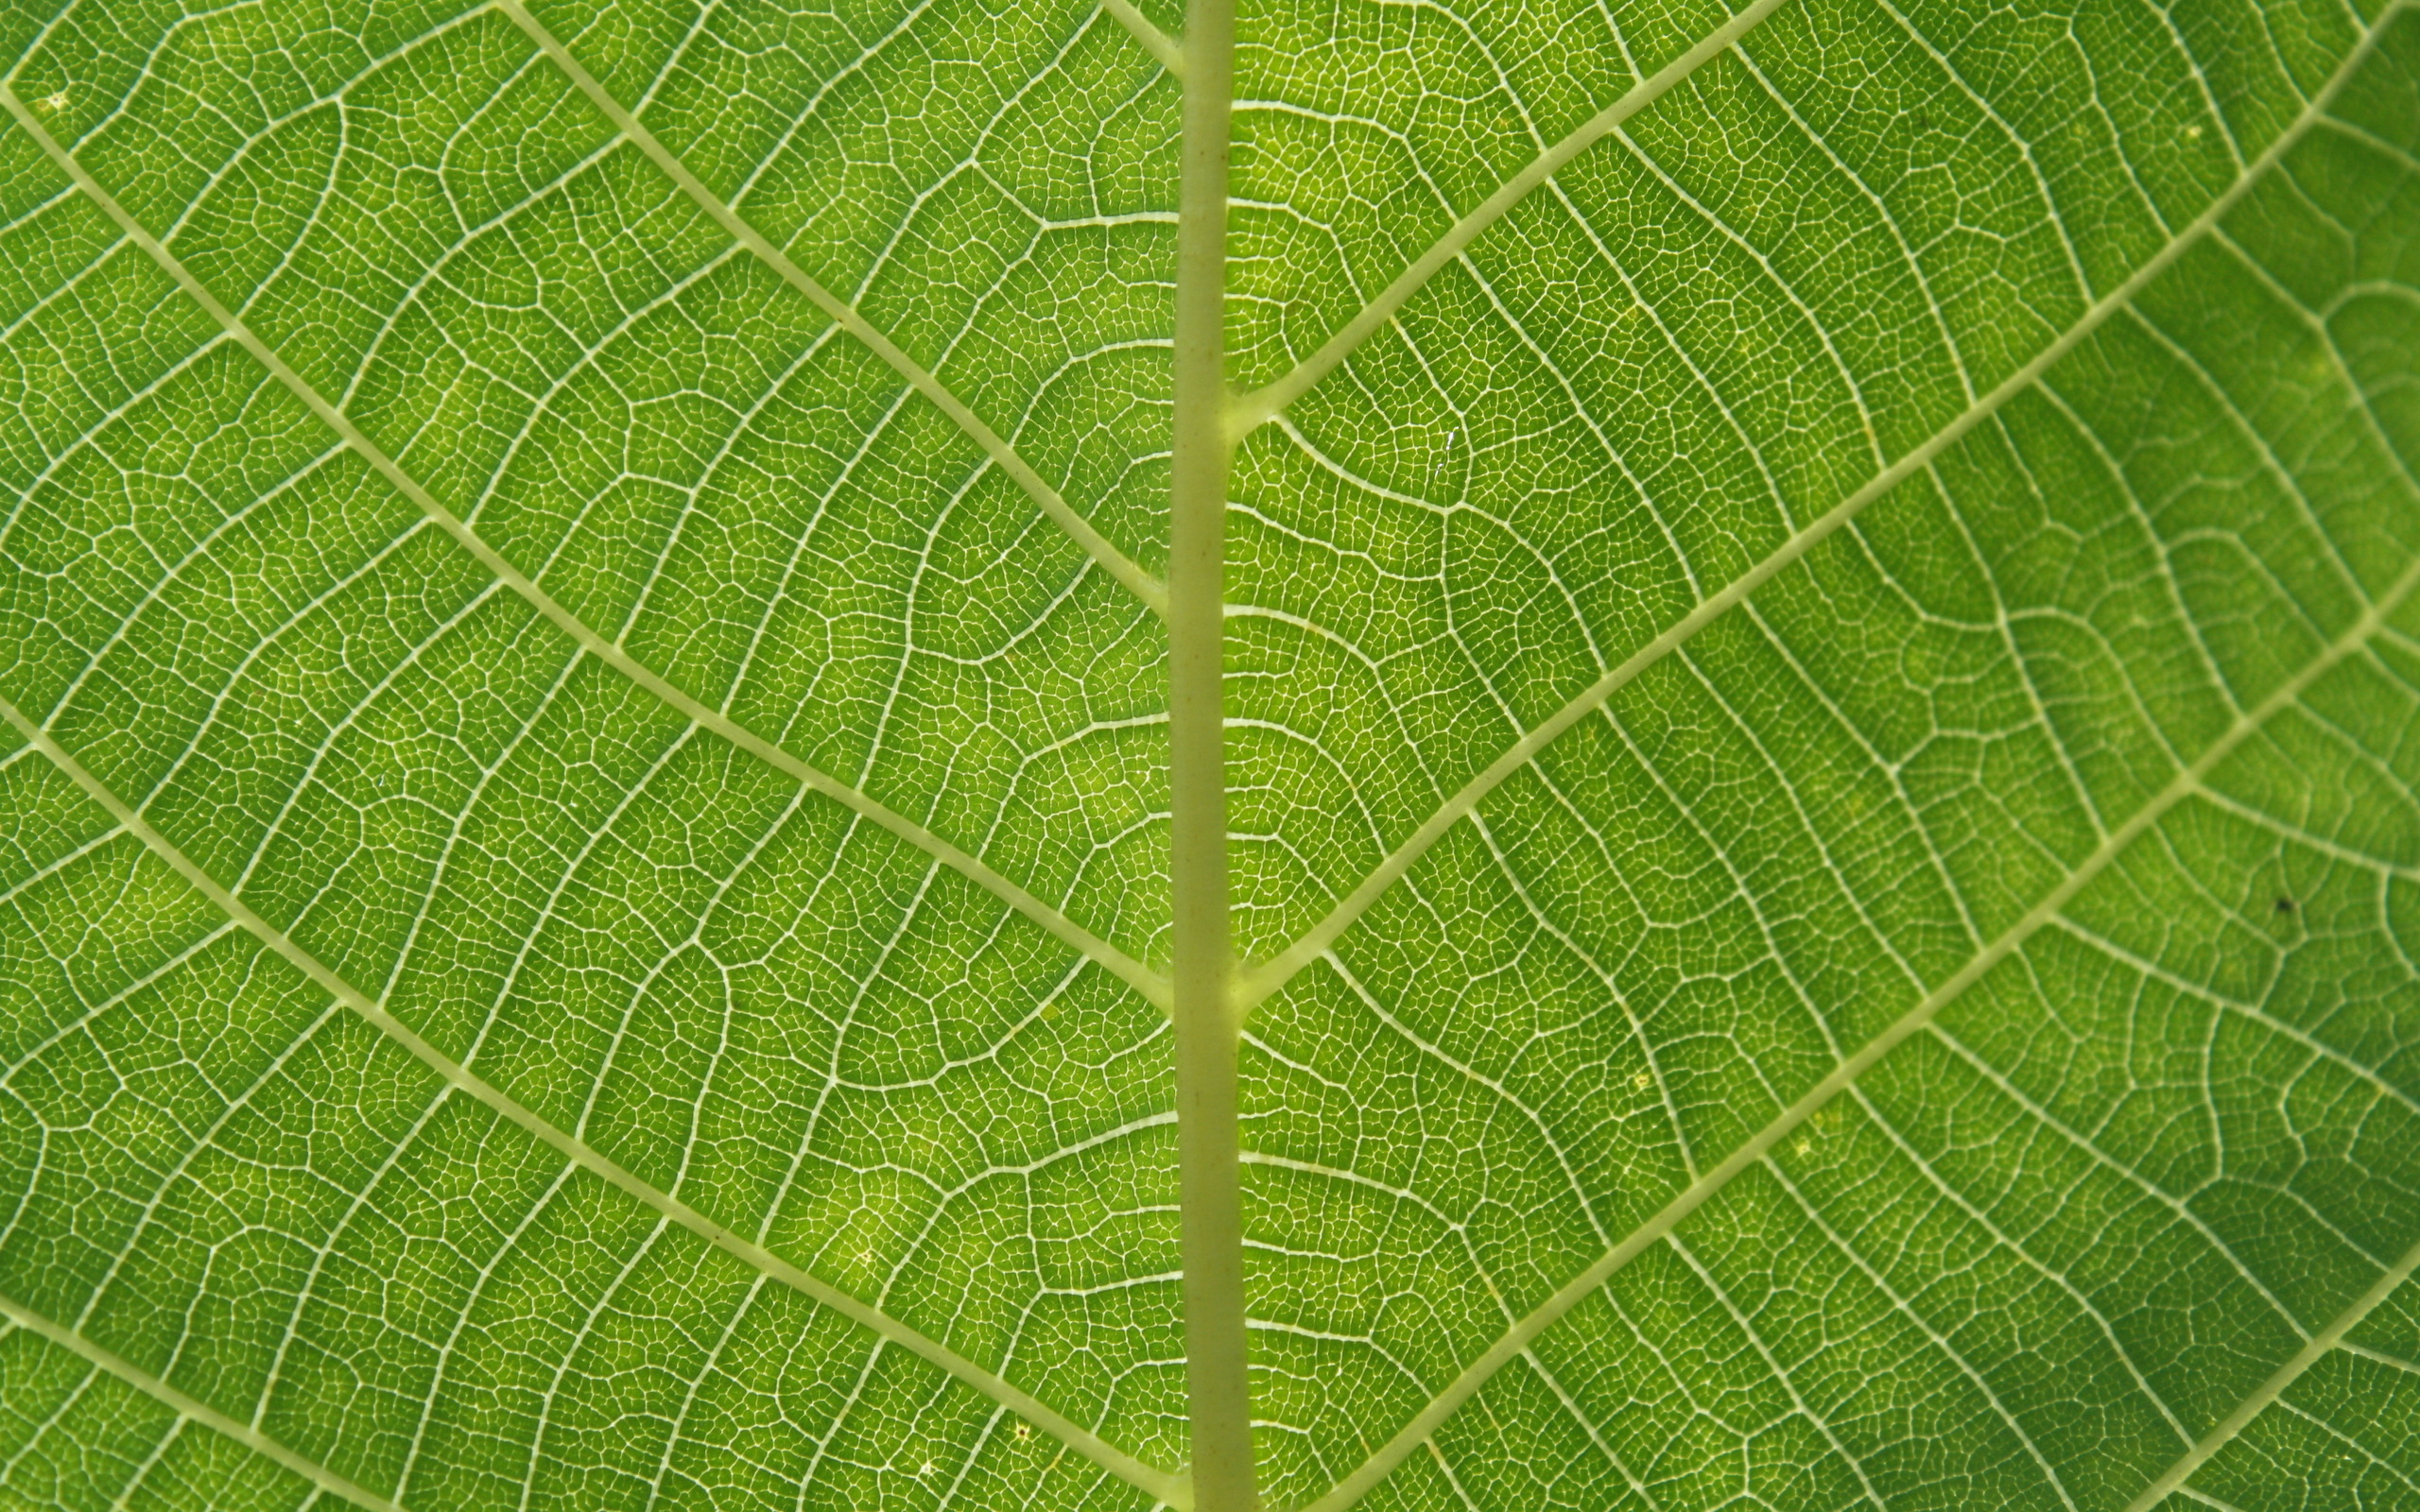 leaf, download photo, texture, green leave texture, background.